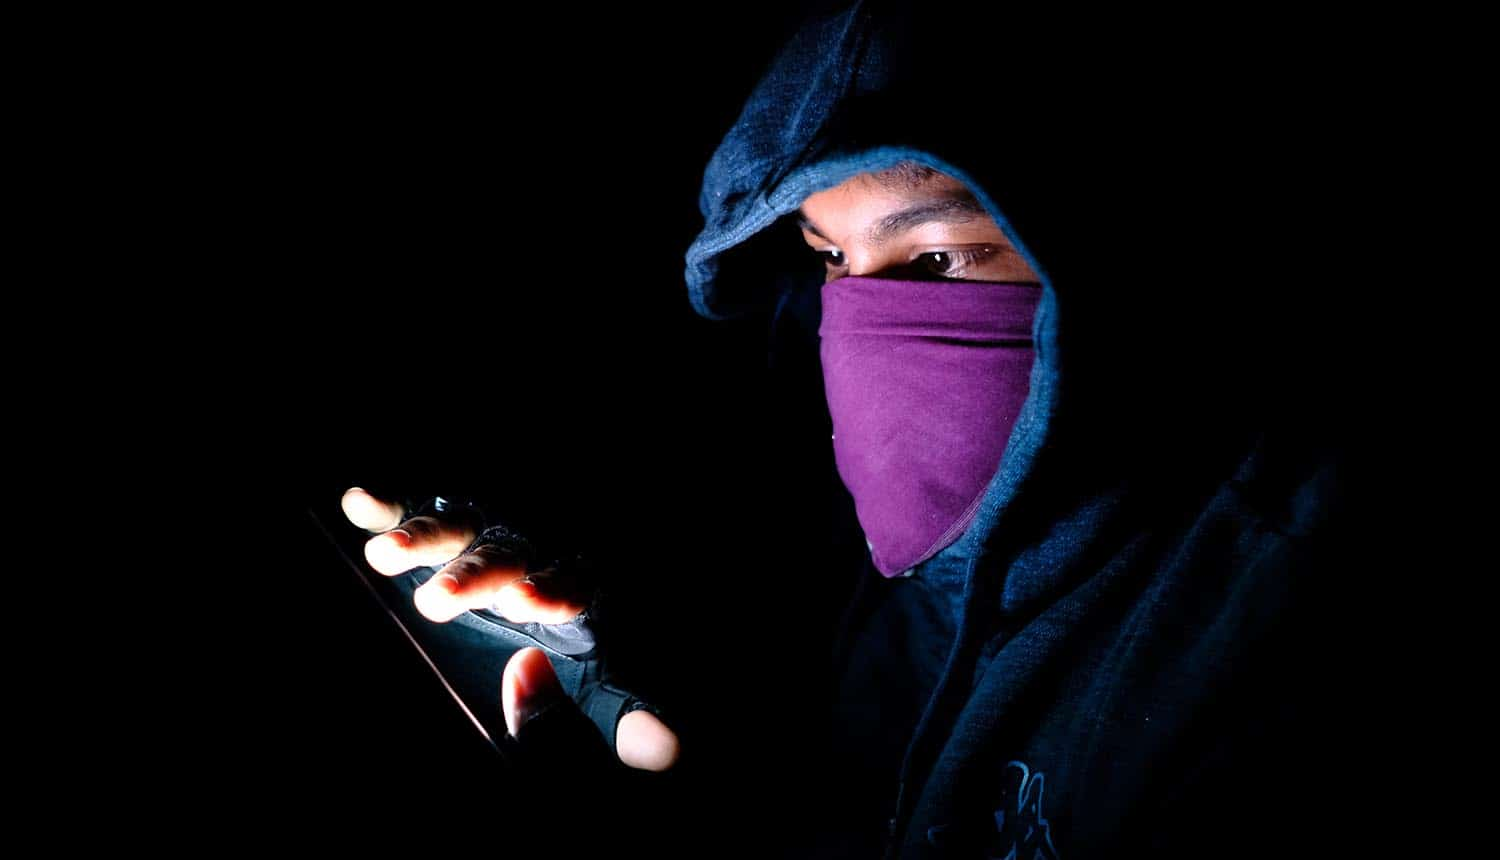 Image of hooded and masked man using a mobile phone signifying cyber espionage by hackers using fake apps with Android malware